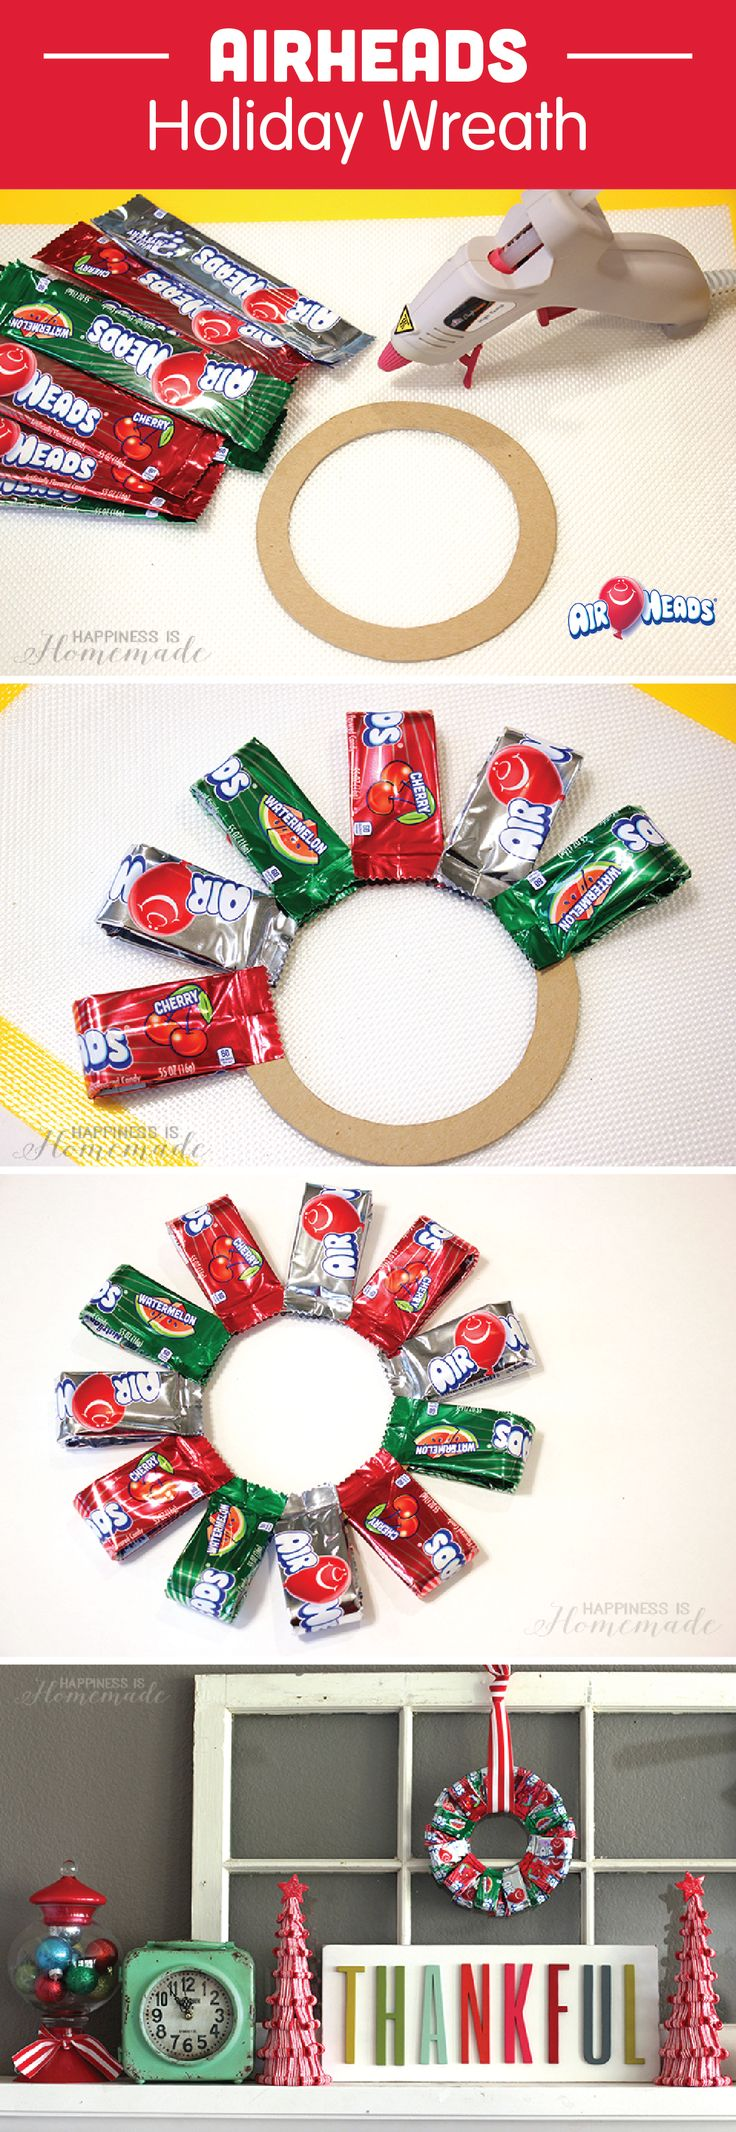 25+ Best Ideas about Candy Wreath on Pinterest | Snowflake ...